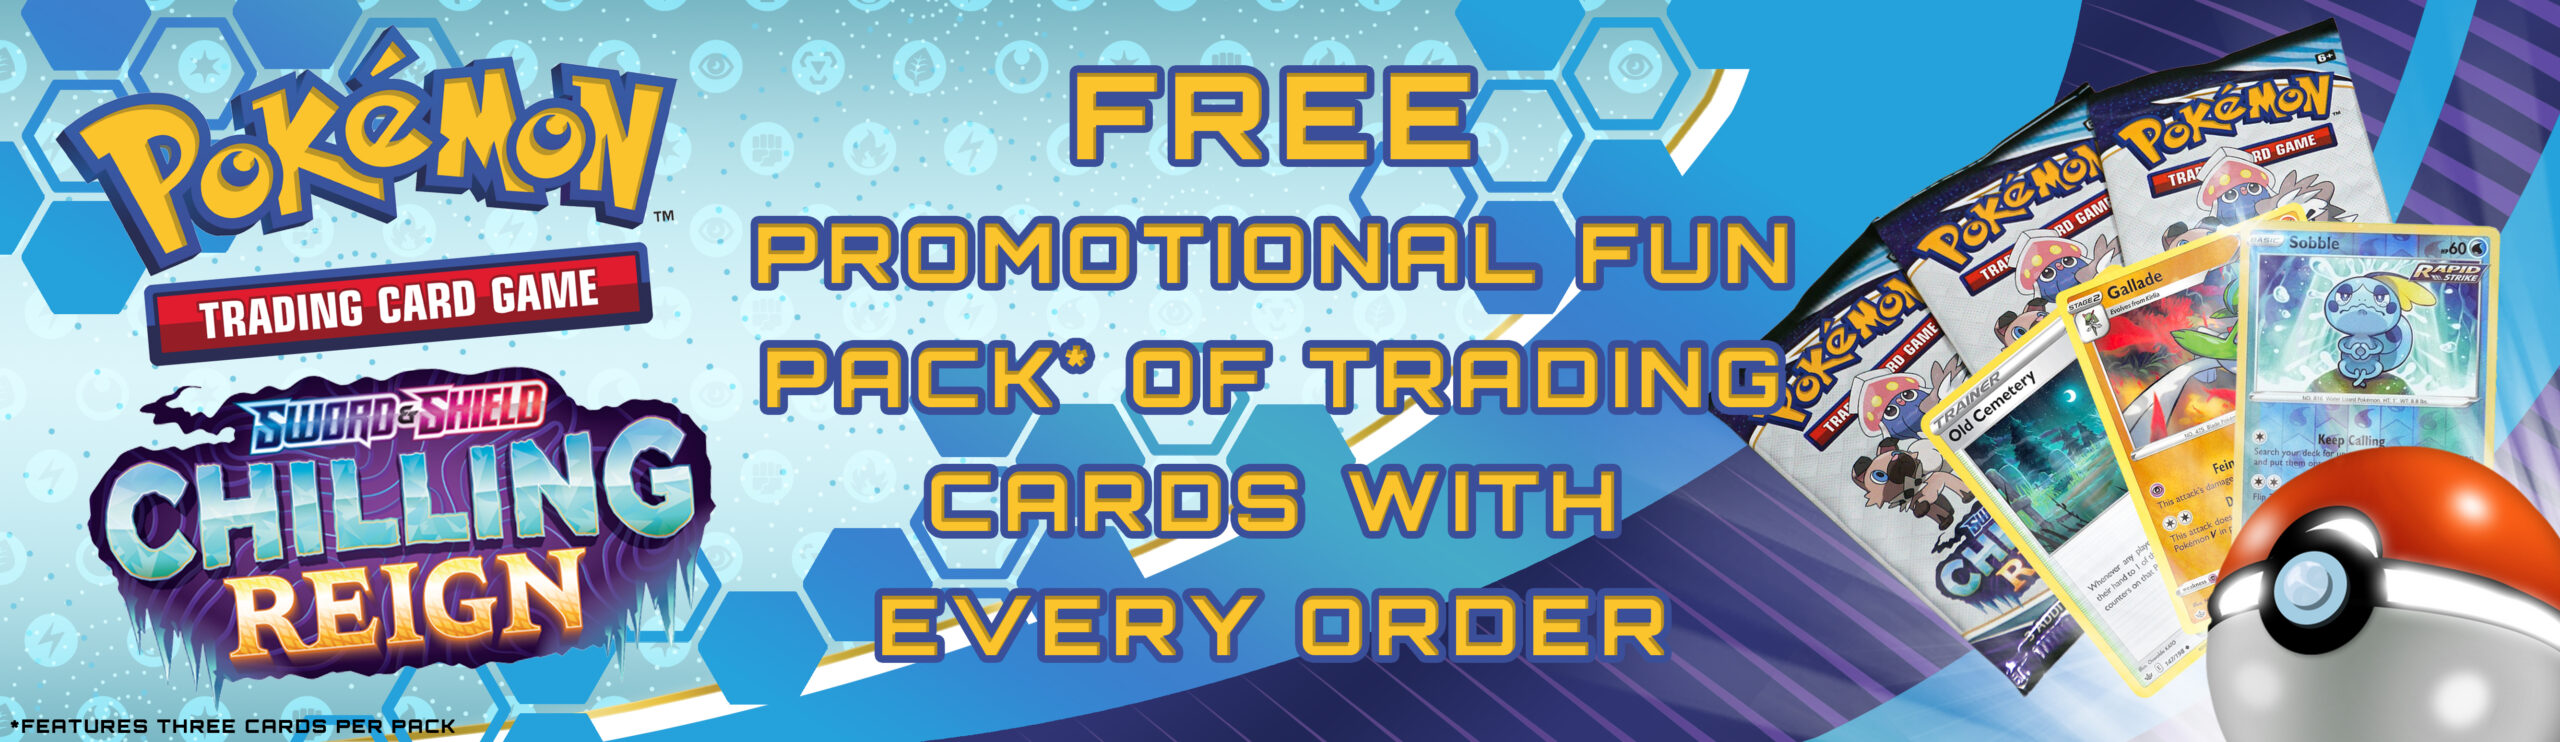 Pokemon Sword & Shield Chilling Reign Free Promotional Fun Pack Trading Cards Banner